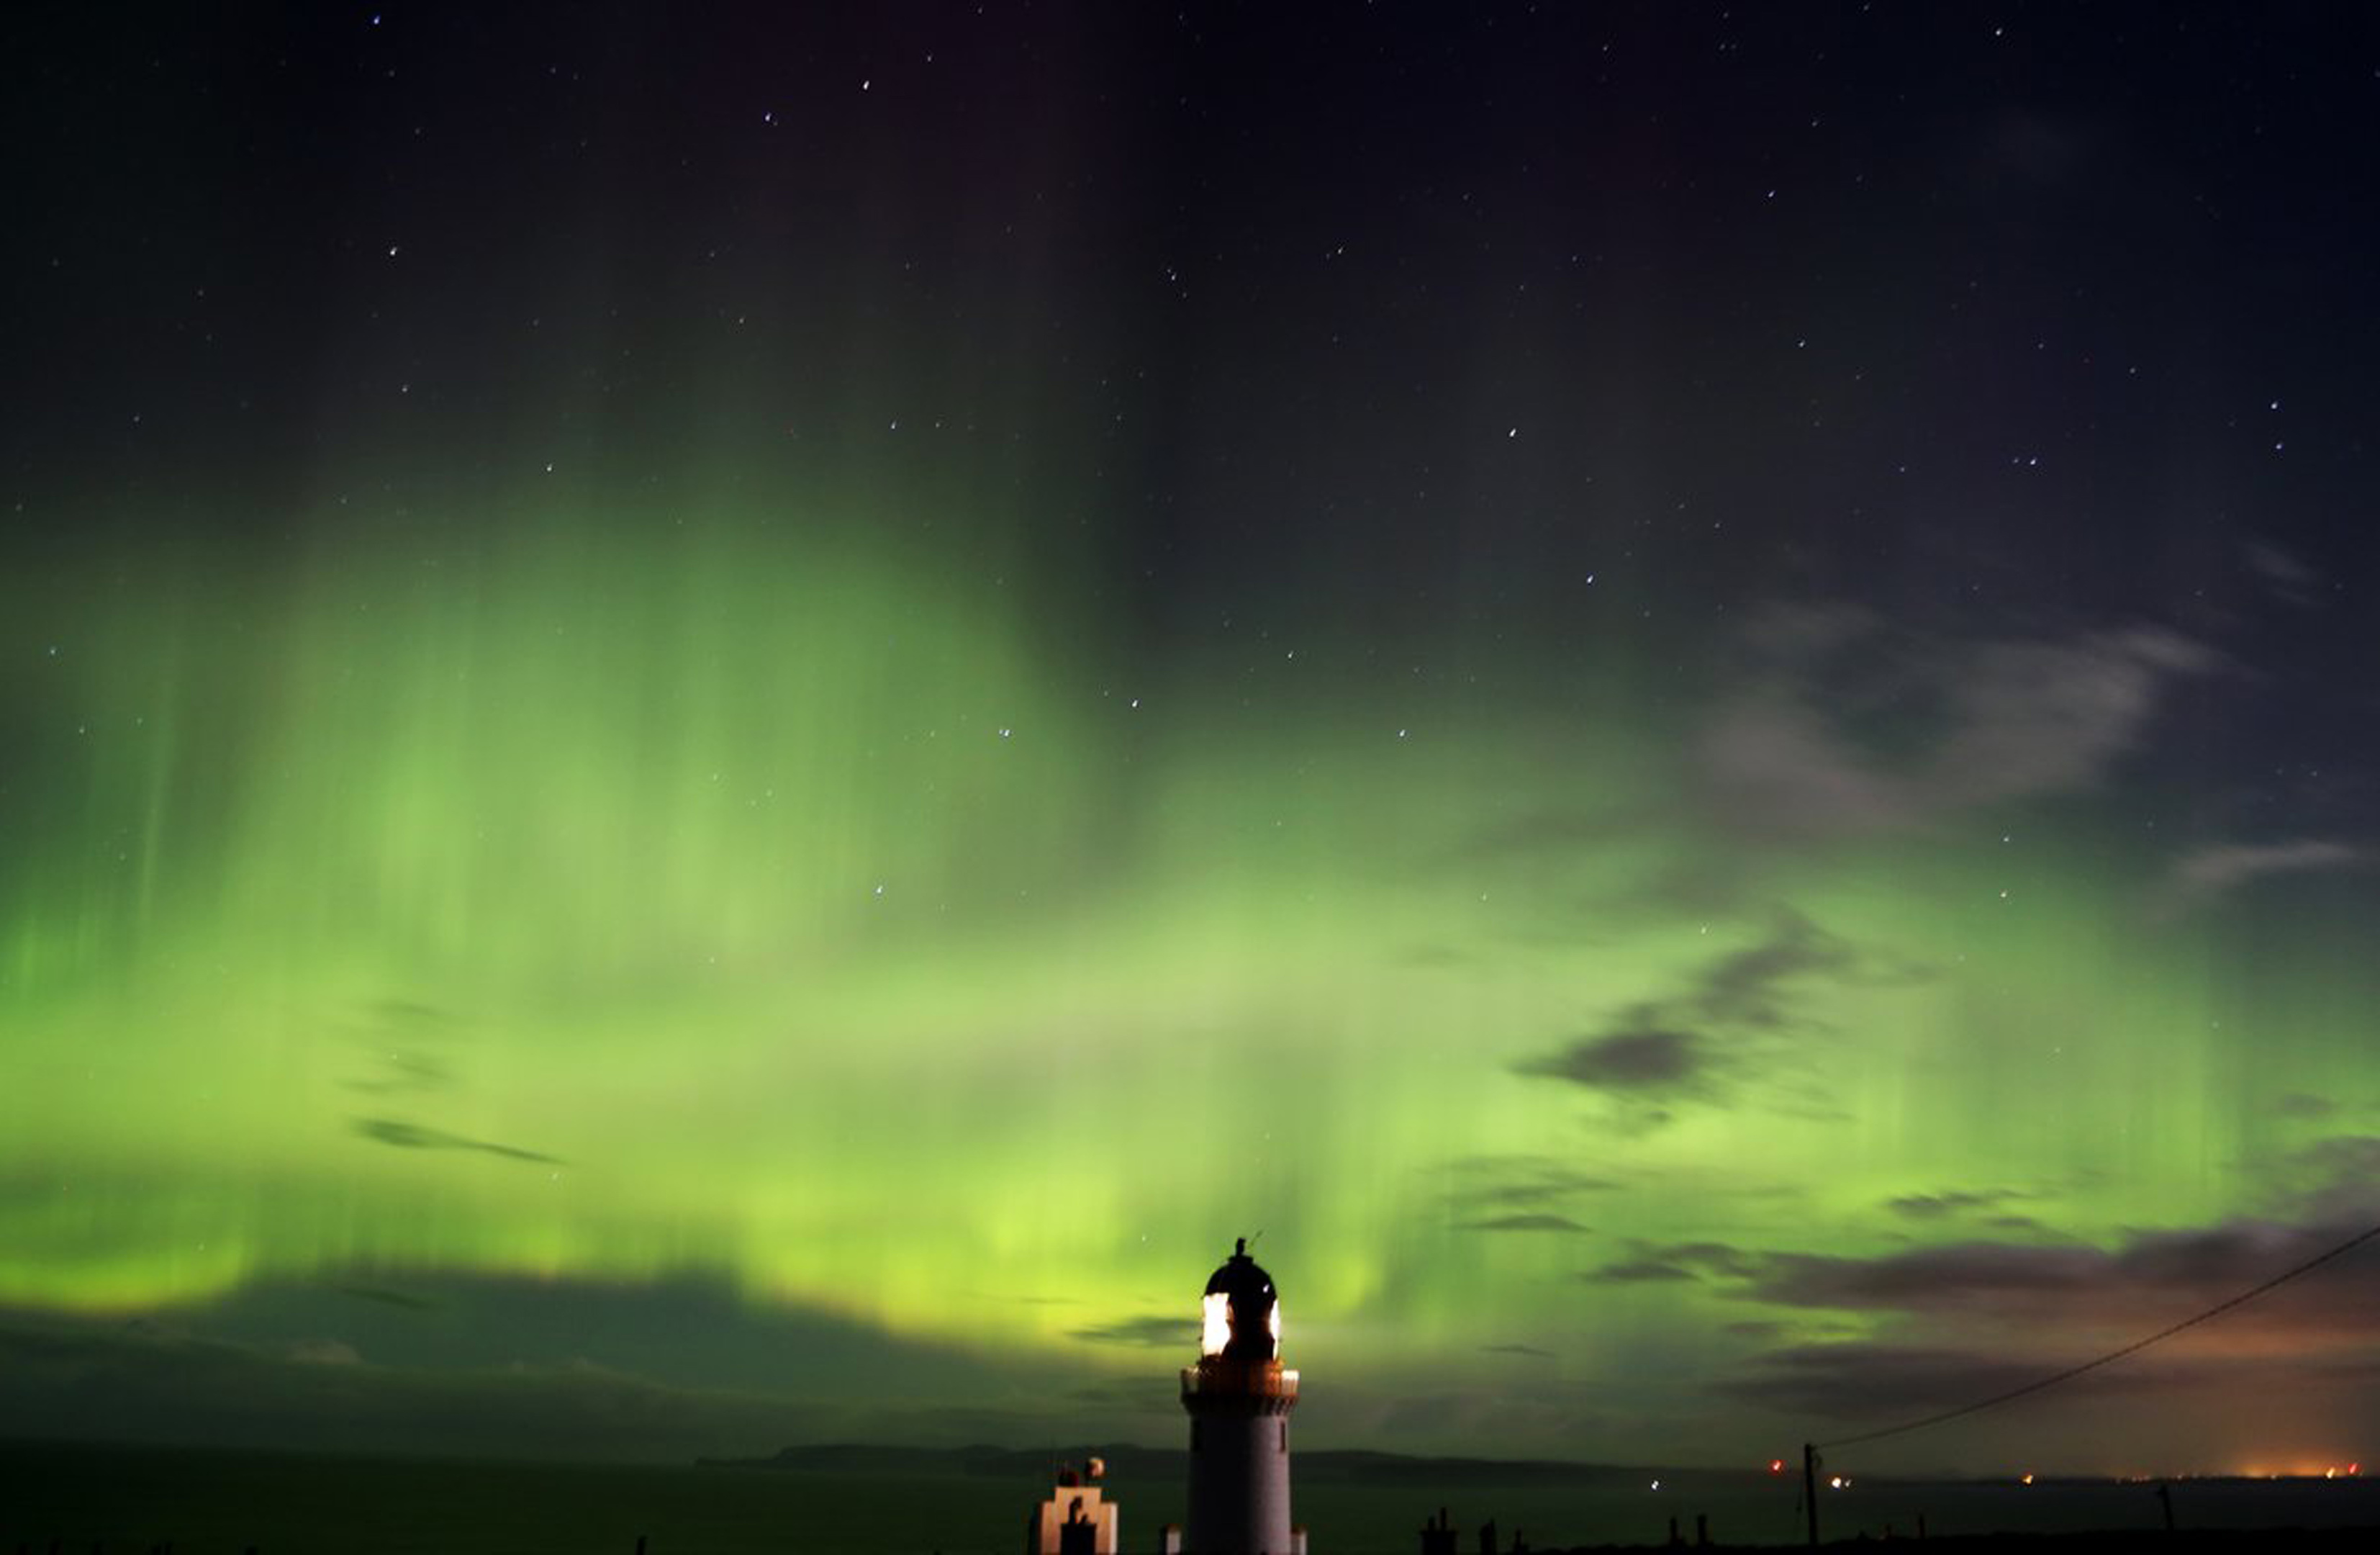 The Northern Lights at Dunnet Head in Scotland. (Sam Flice/PA Wire)